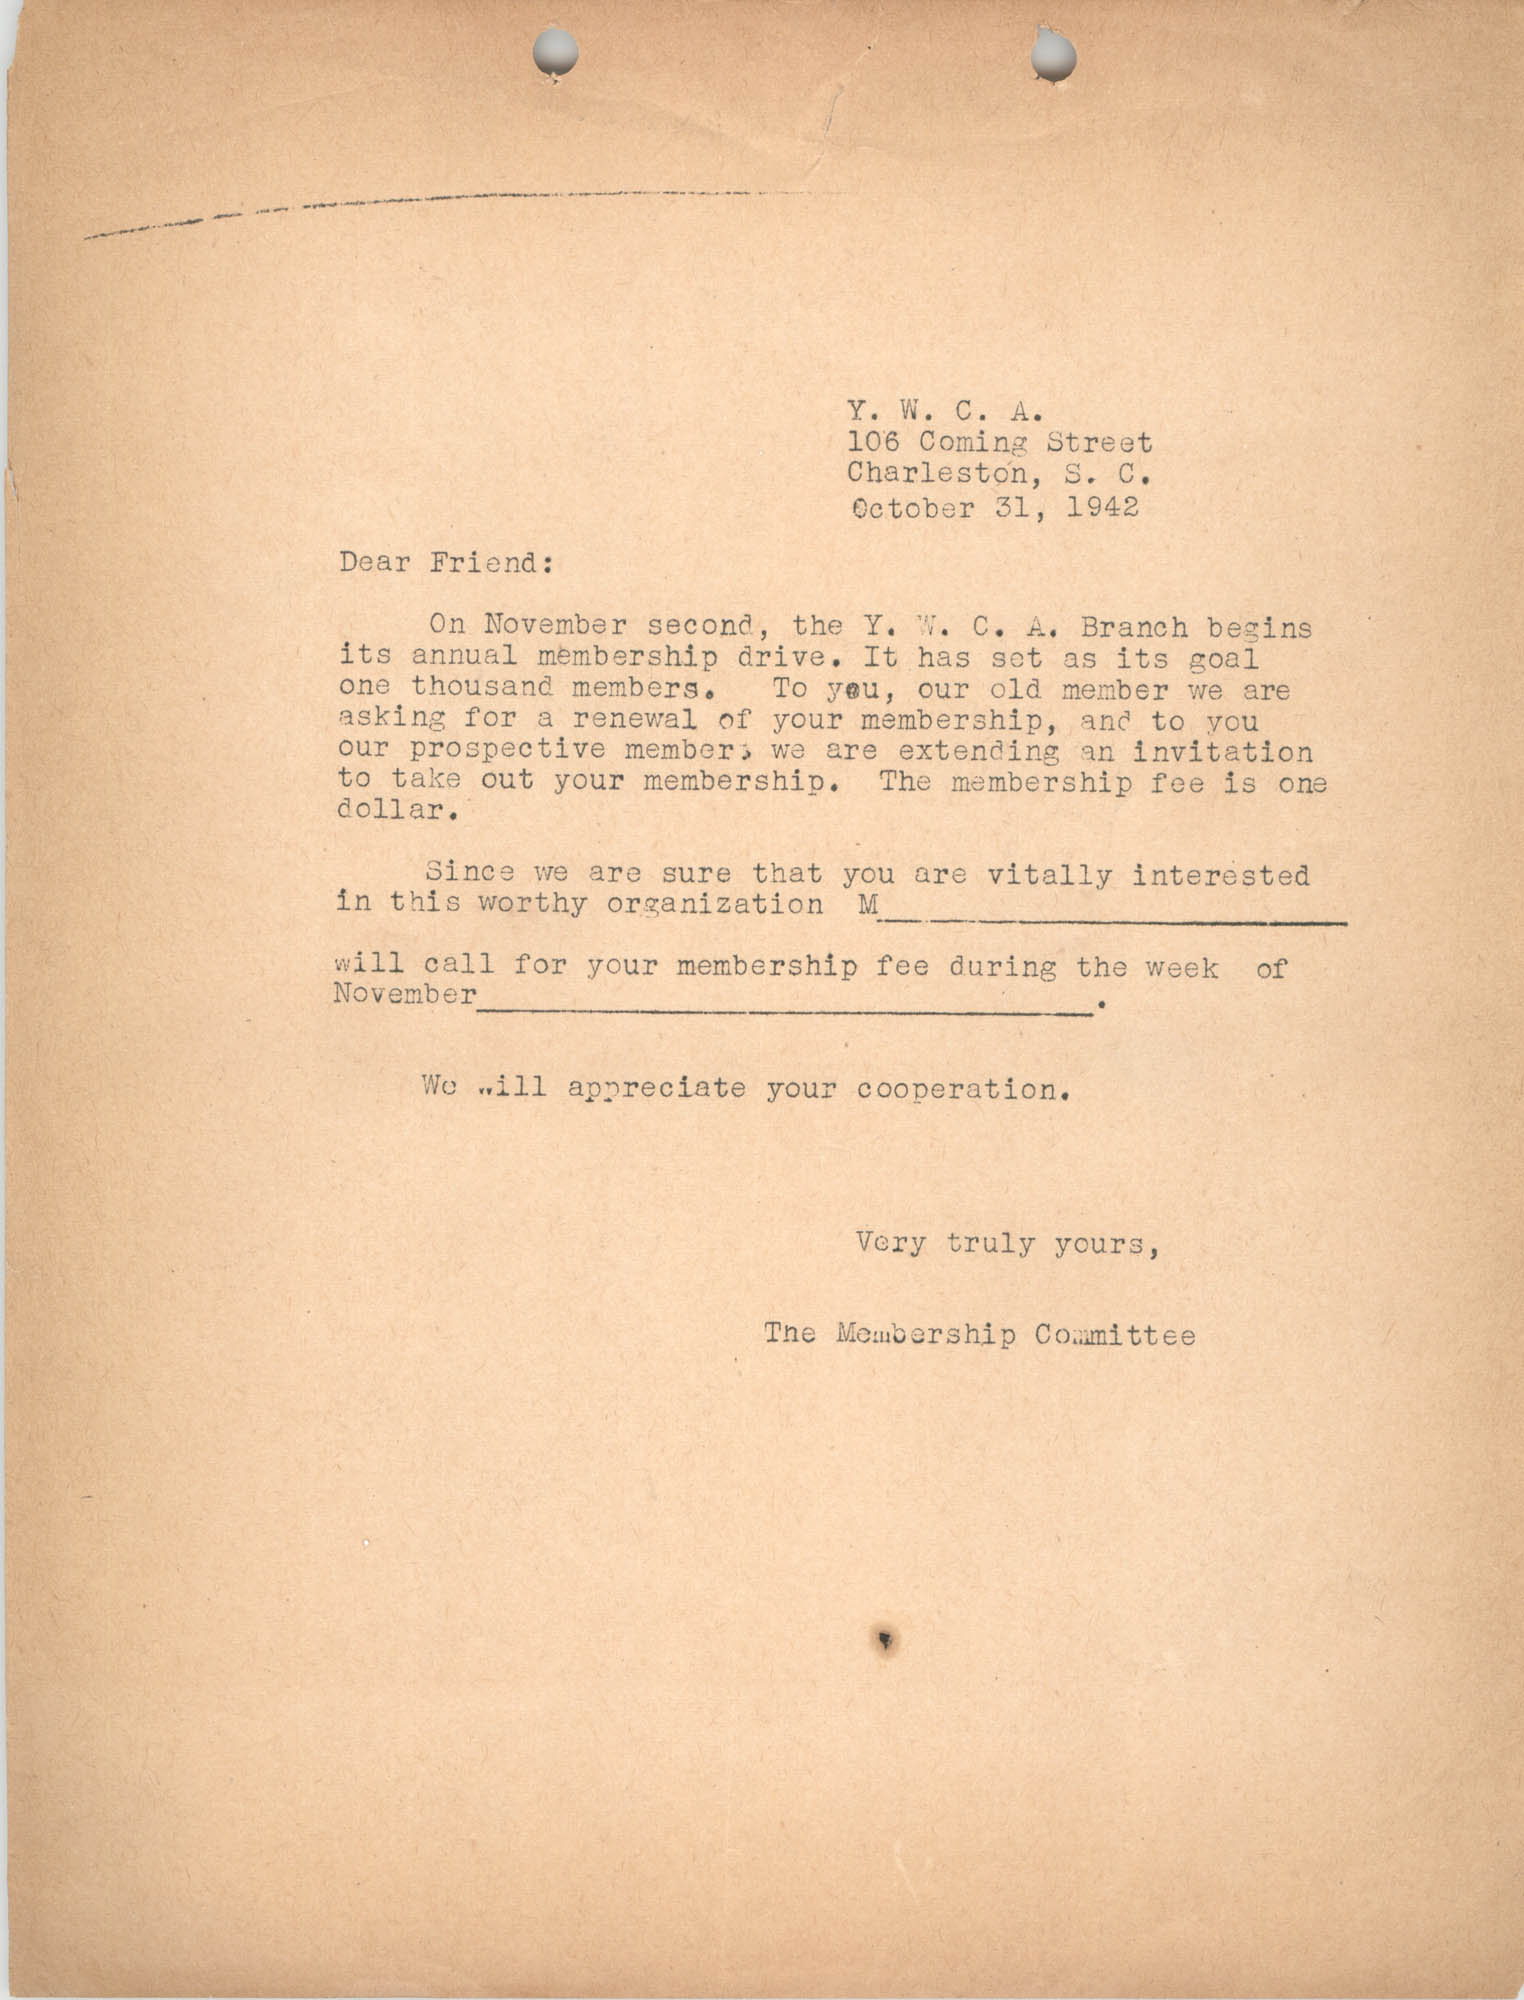 Letter from Coming Street Y.W.C.A. Membership Committee, October 31, 1942